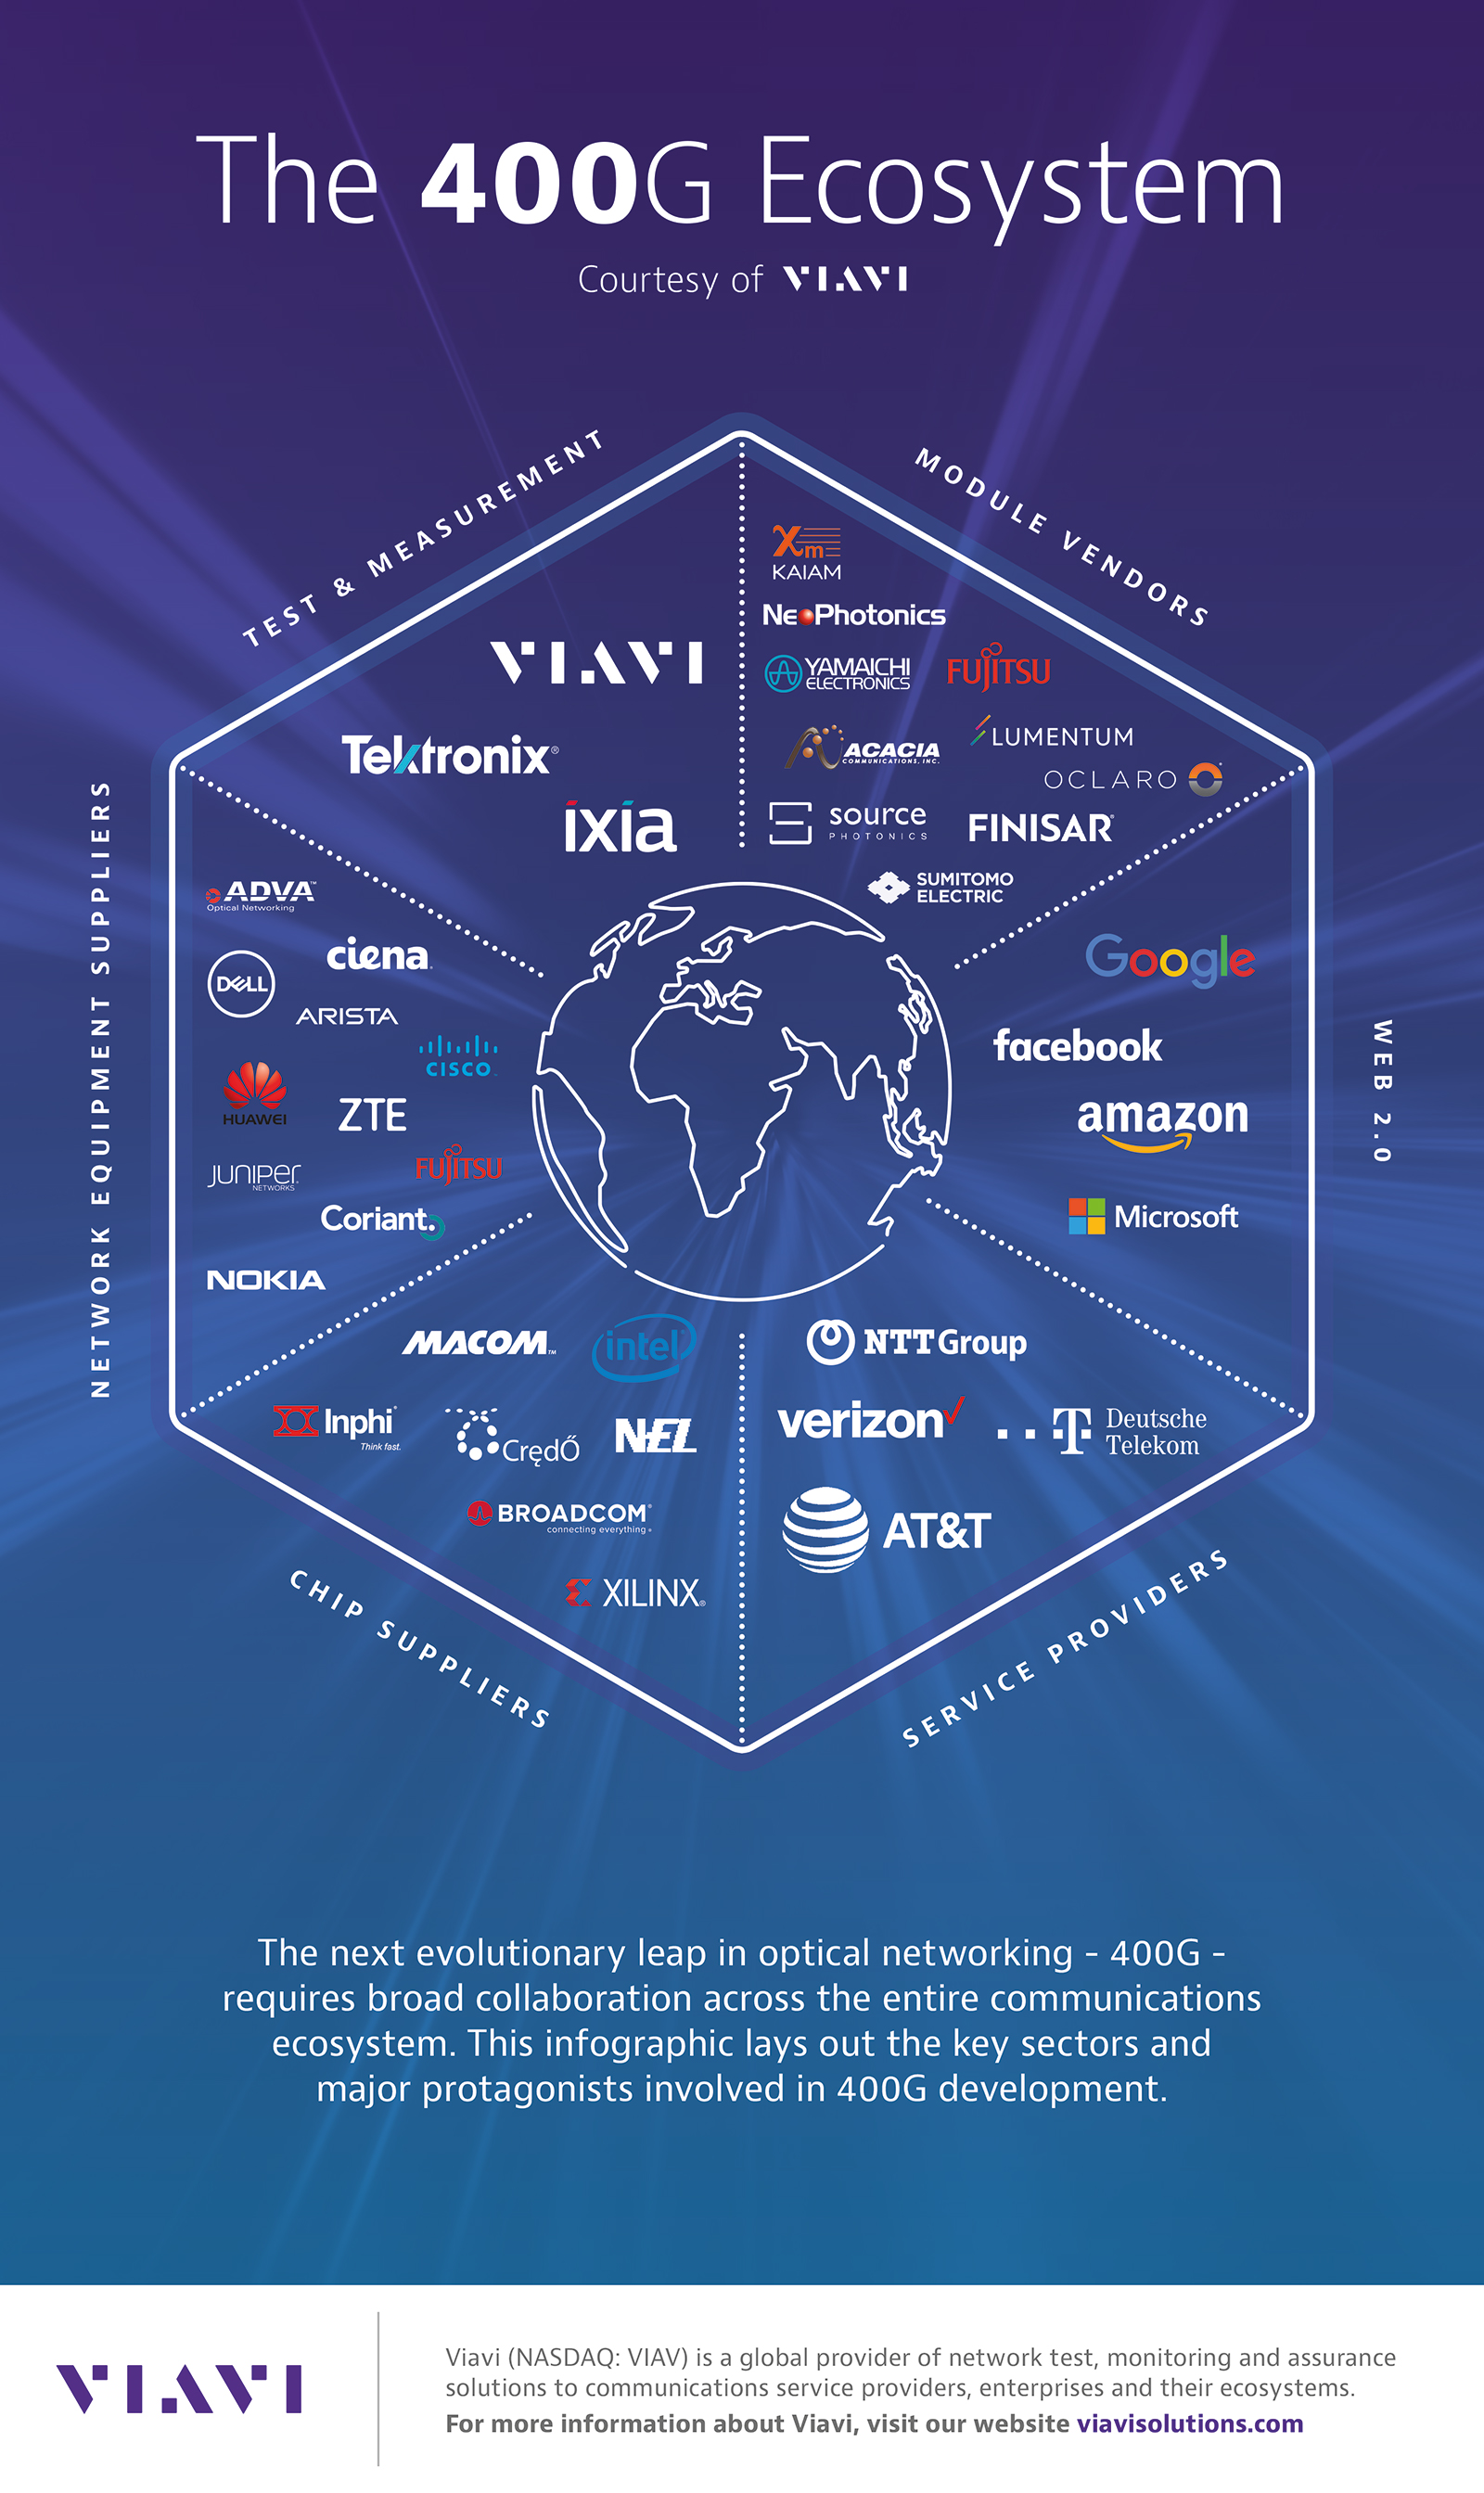 VIAVI Supplies 400G Testers Throughout High-Speed Optical Networking Ecosystem